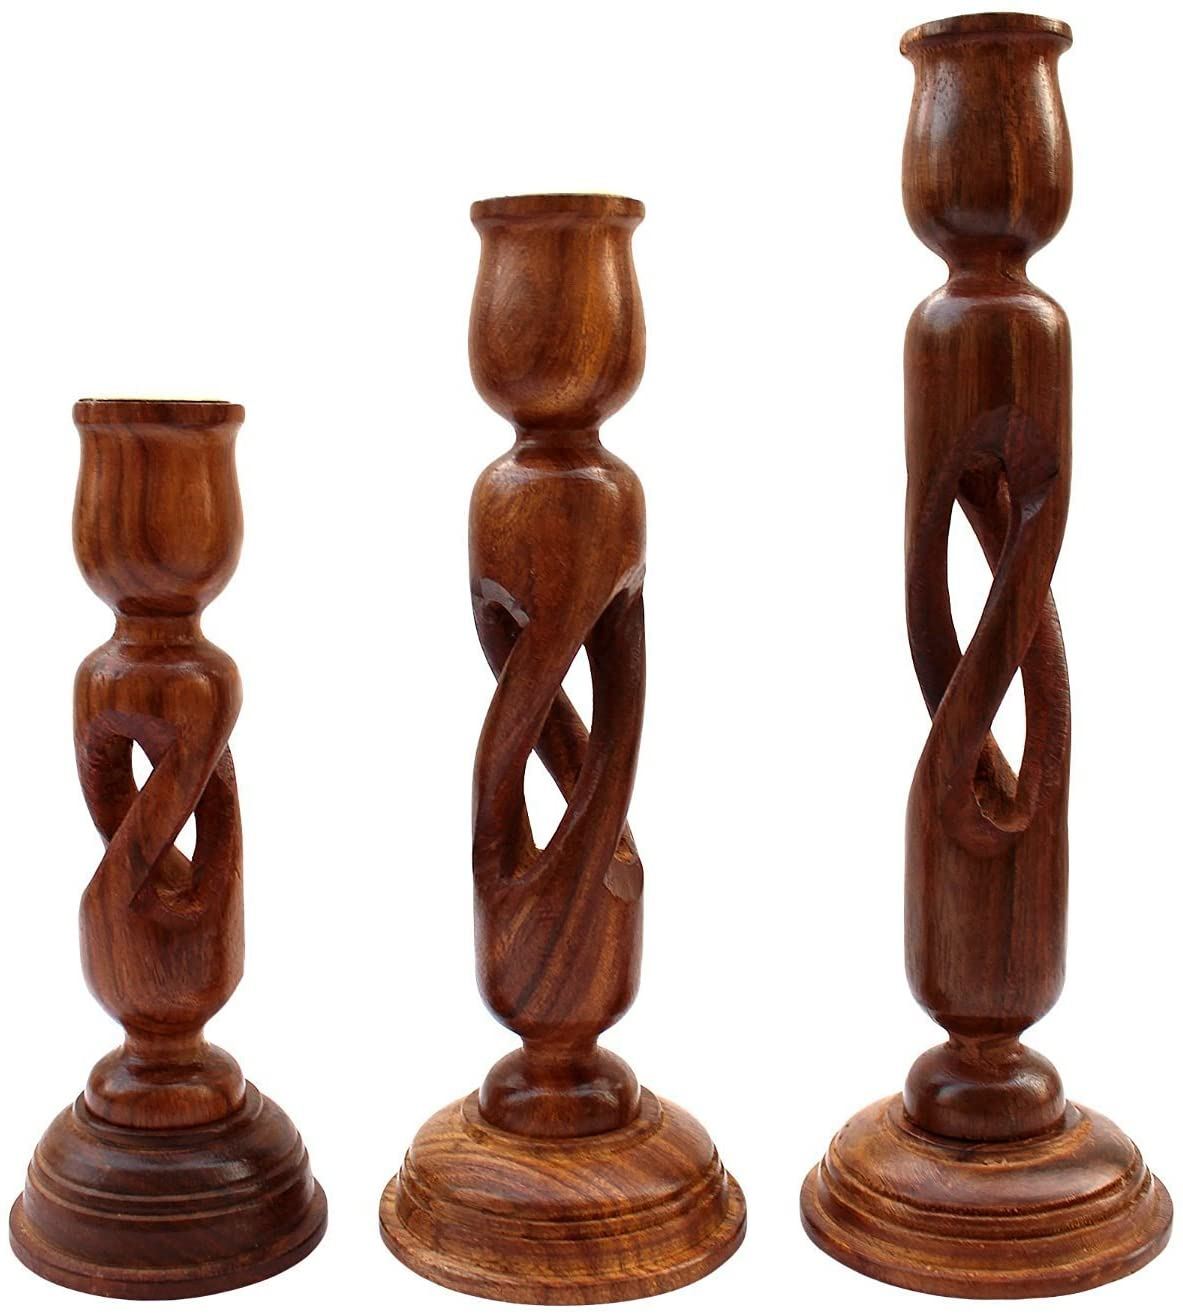 Handmade Wooden Candle Stand Holder Gifts Set of 3